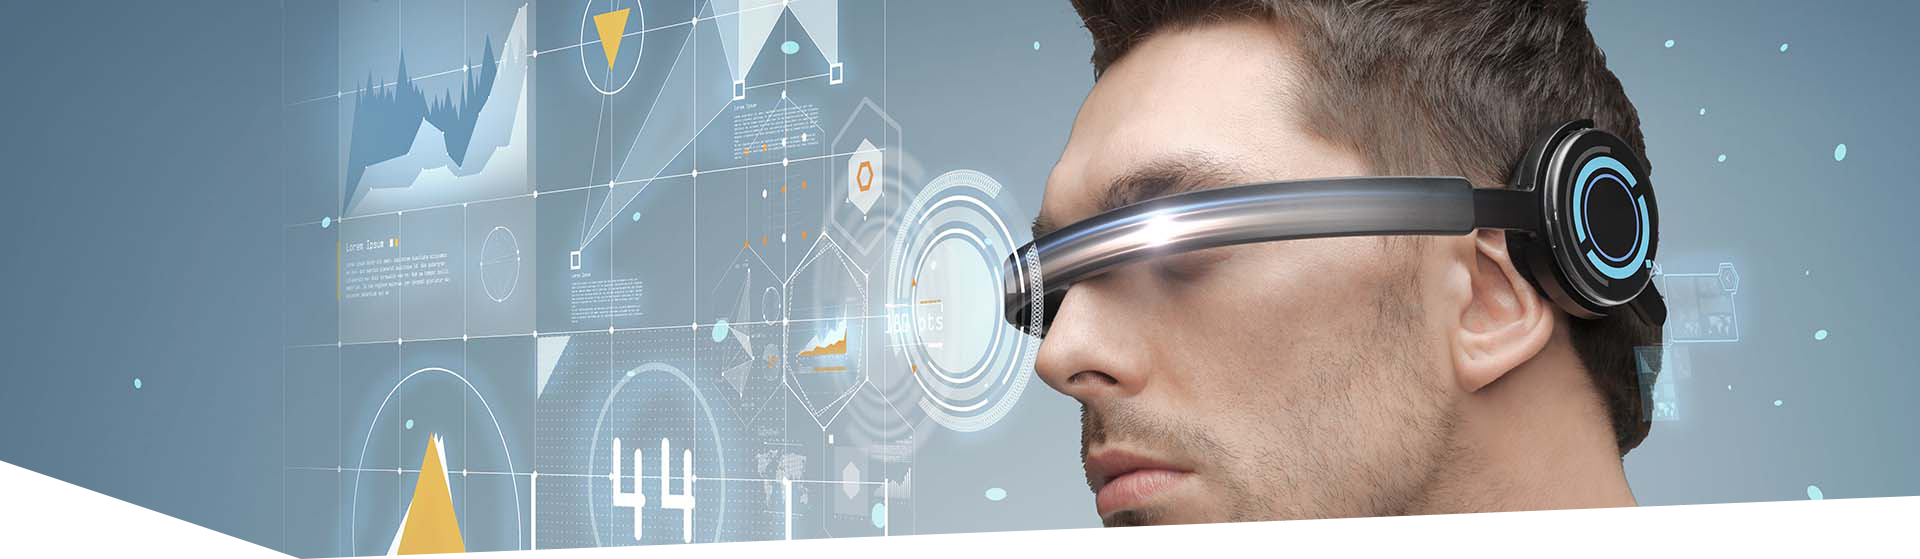 Digital Foresight - Preparing for the Future